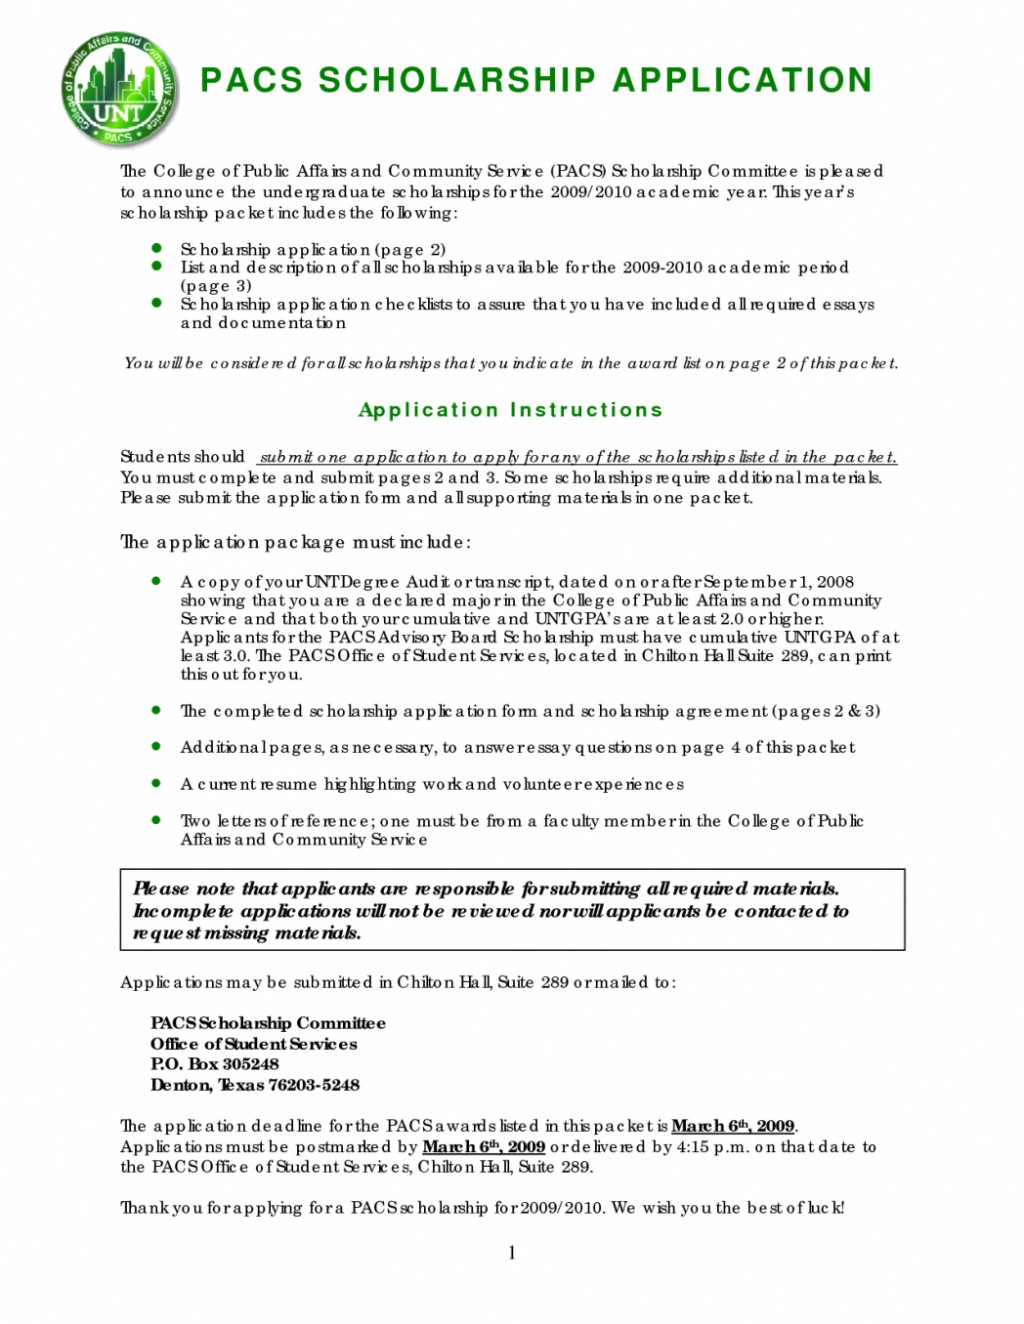 021 Apply Texas Essay Topics Home Page Hell Reaction Uw La Crosse Application Question 11exu Questions Madison Milwaukee 1048x1356 Incredible Examples Transfer Large